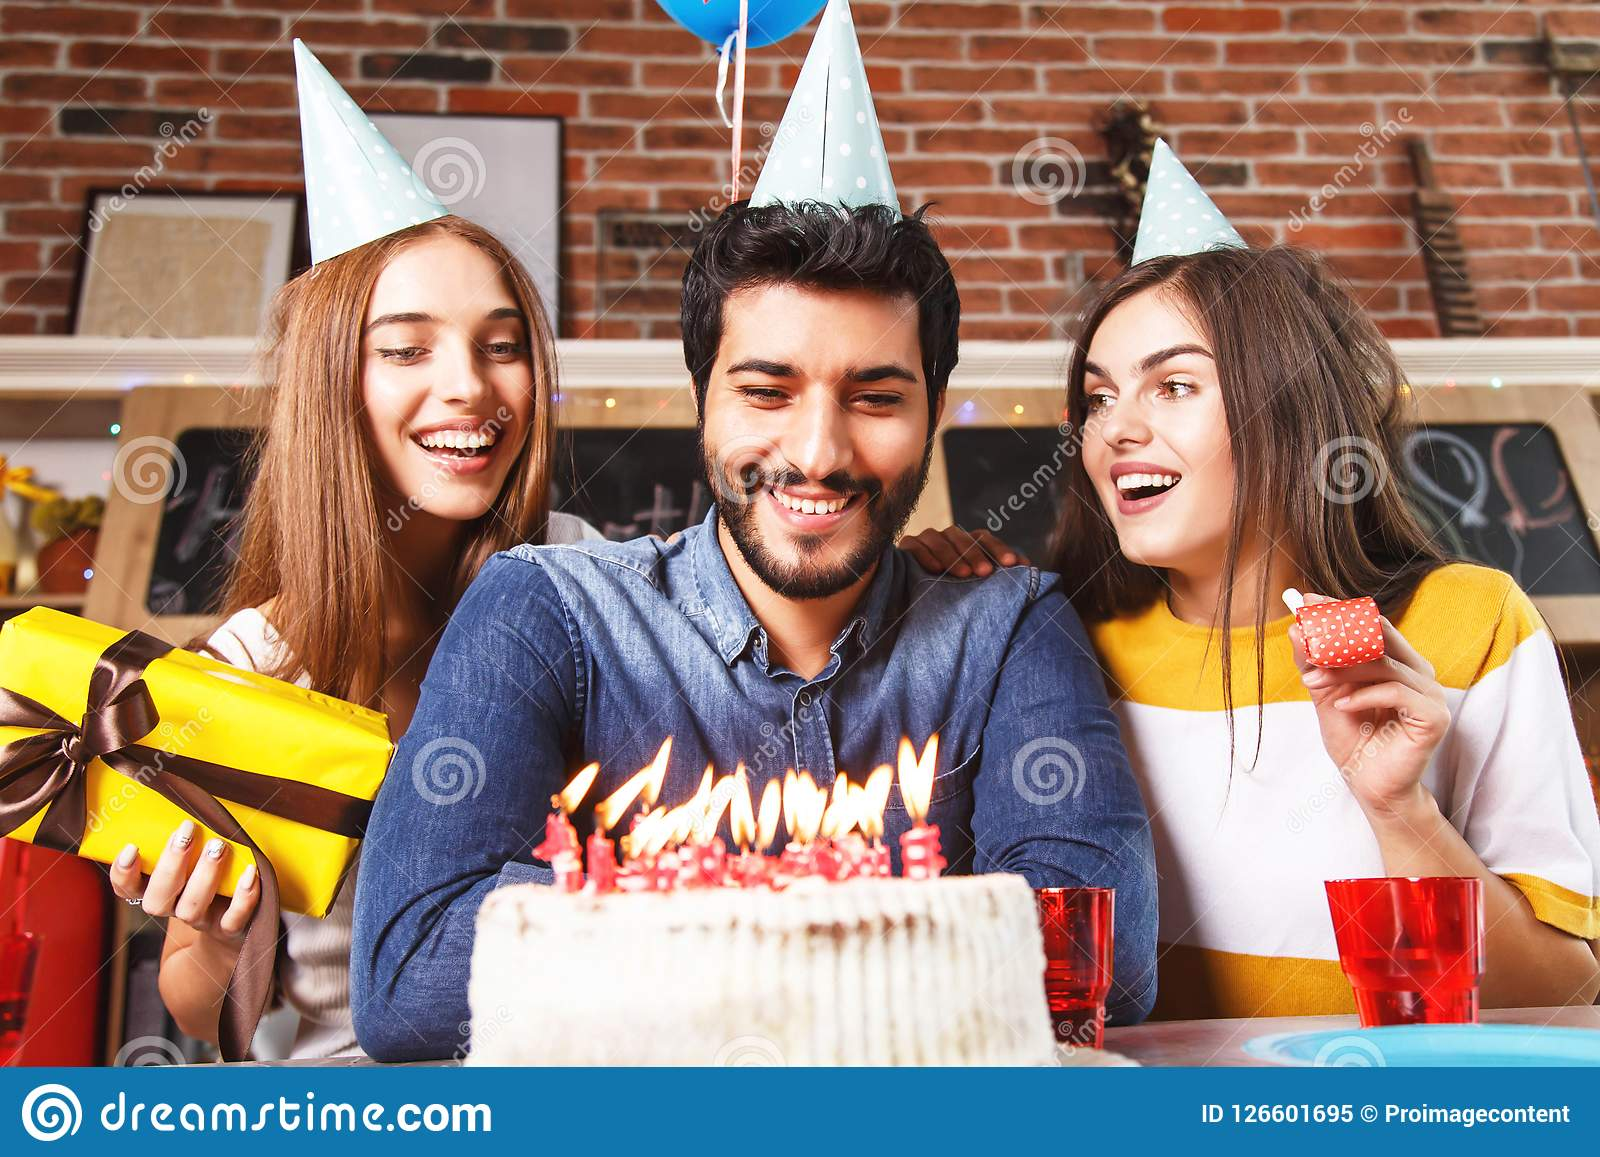 Man Blow Out Candles On White Cake